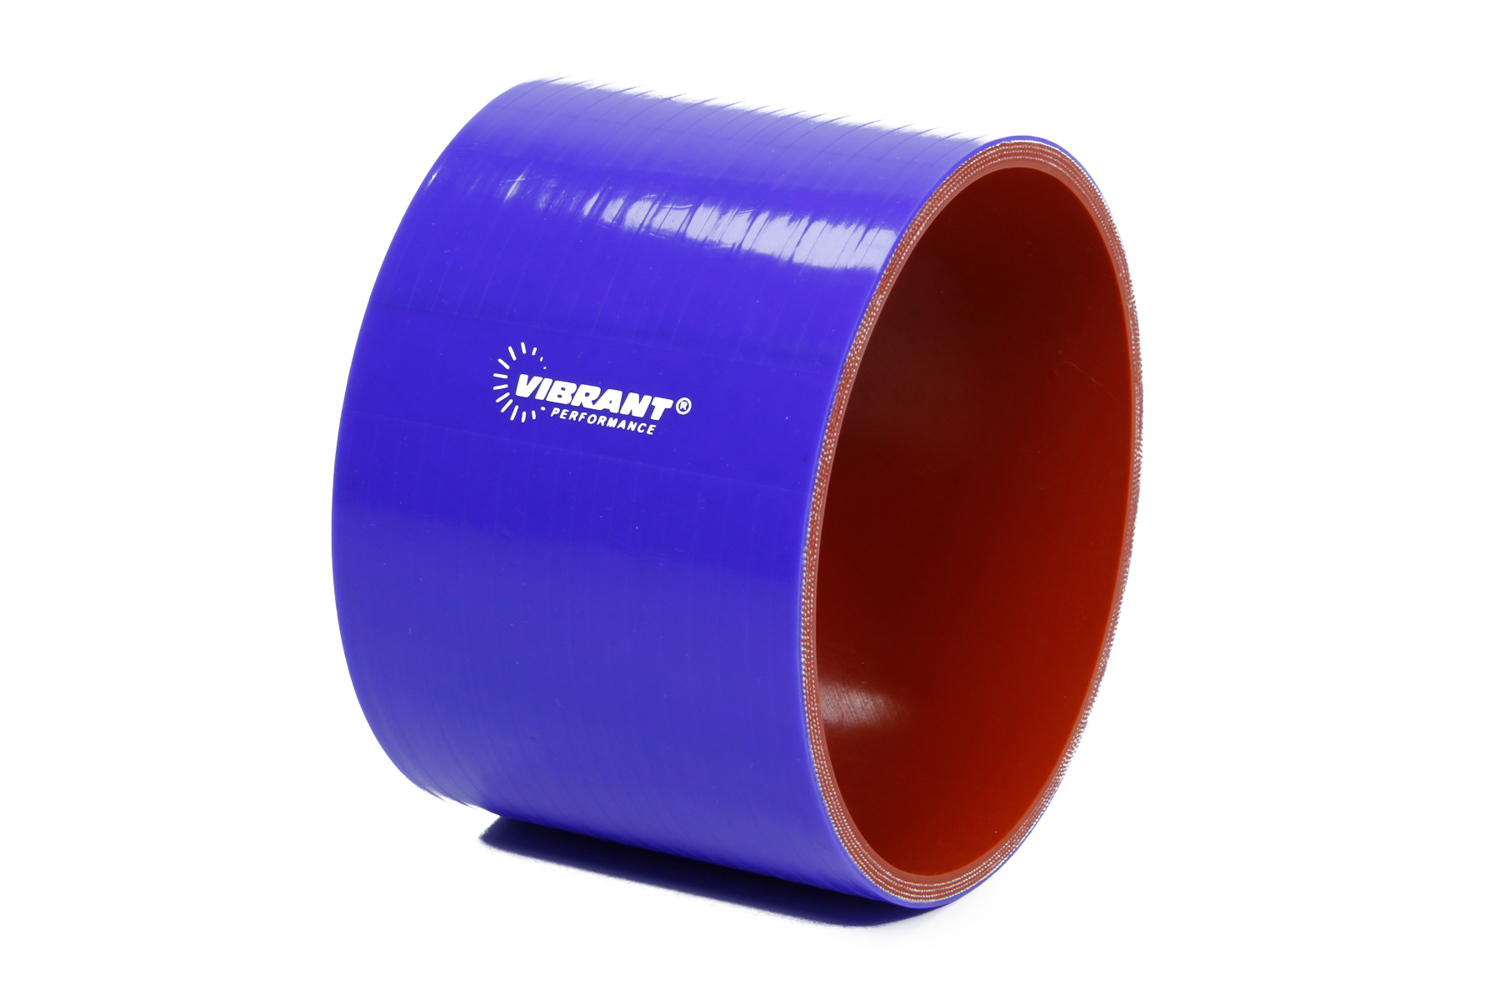 Vibrant Performance 4 Ply Silicone Sleeve 4i n I.D. x 3in long - Blue